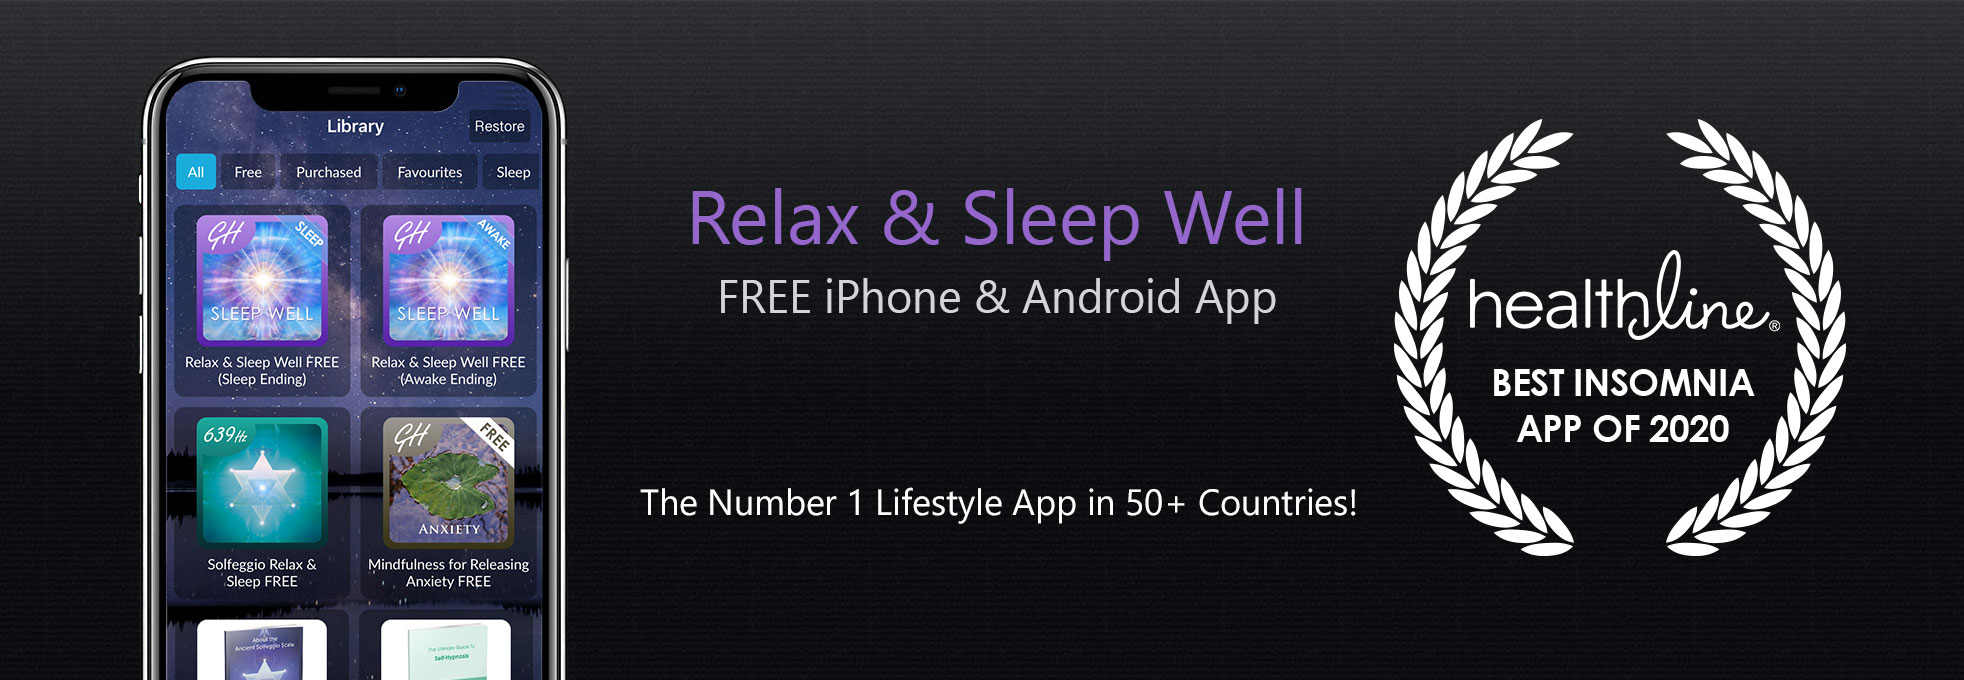 Relax & Sleep Well Free Hypnosis App